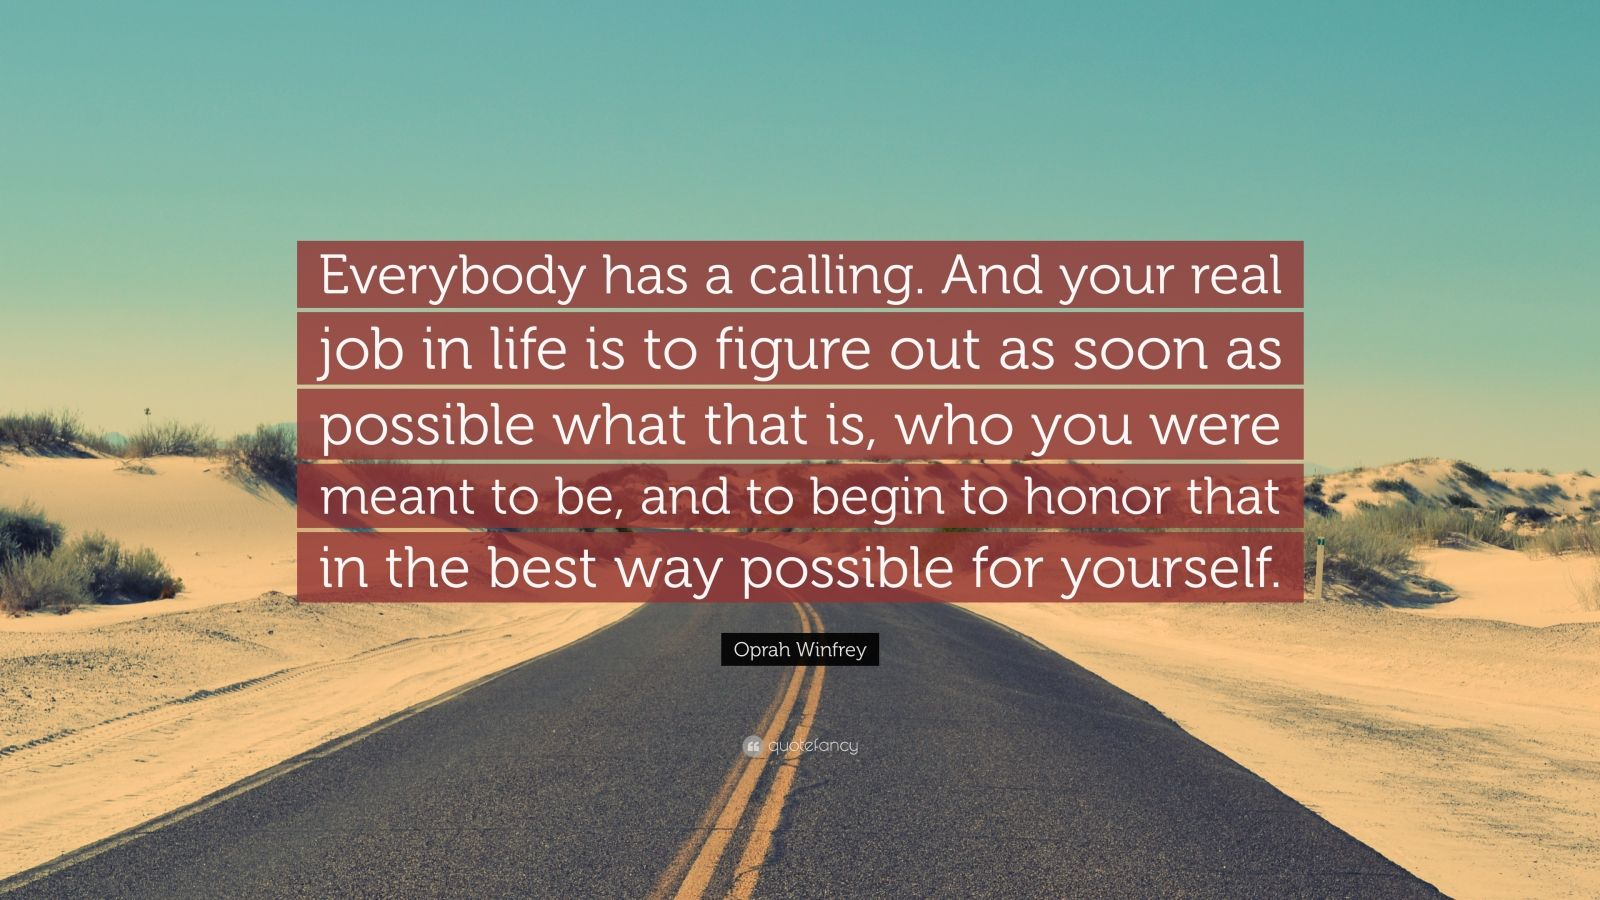 """Oprah Winfrey Quote: """"Everybody has a calling. And your real job in life is to figure out as soon as possible what that is, who you were meant to be, and to begin to honor that in the best way possible for yourself."""""""